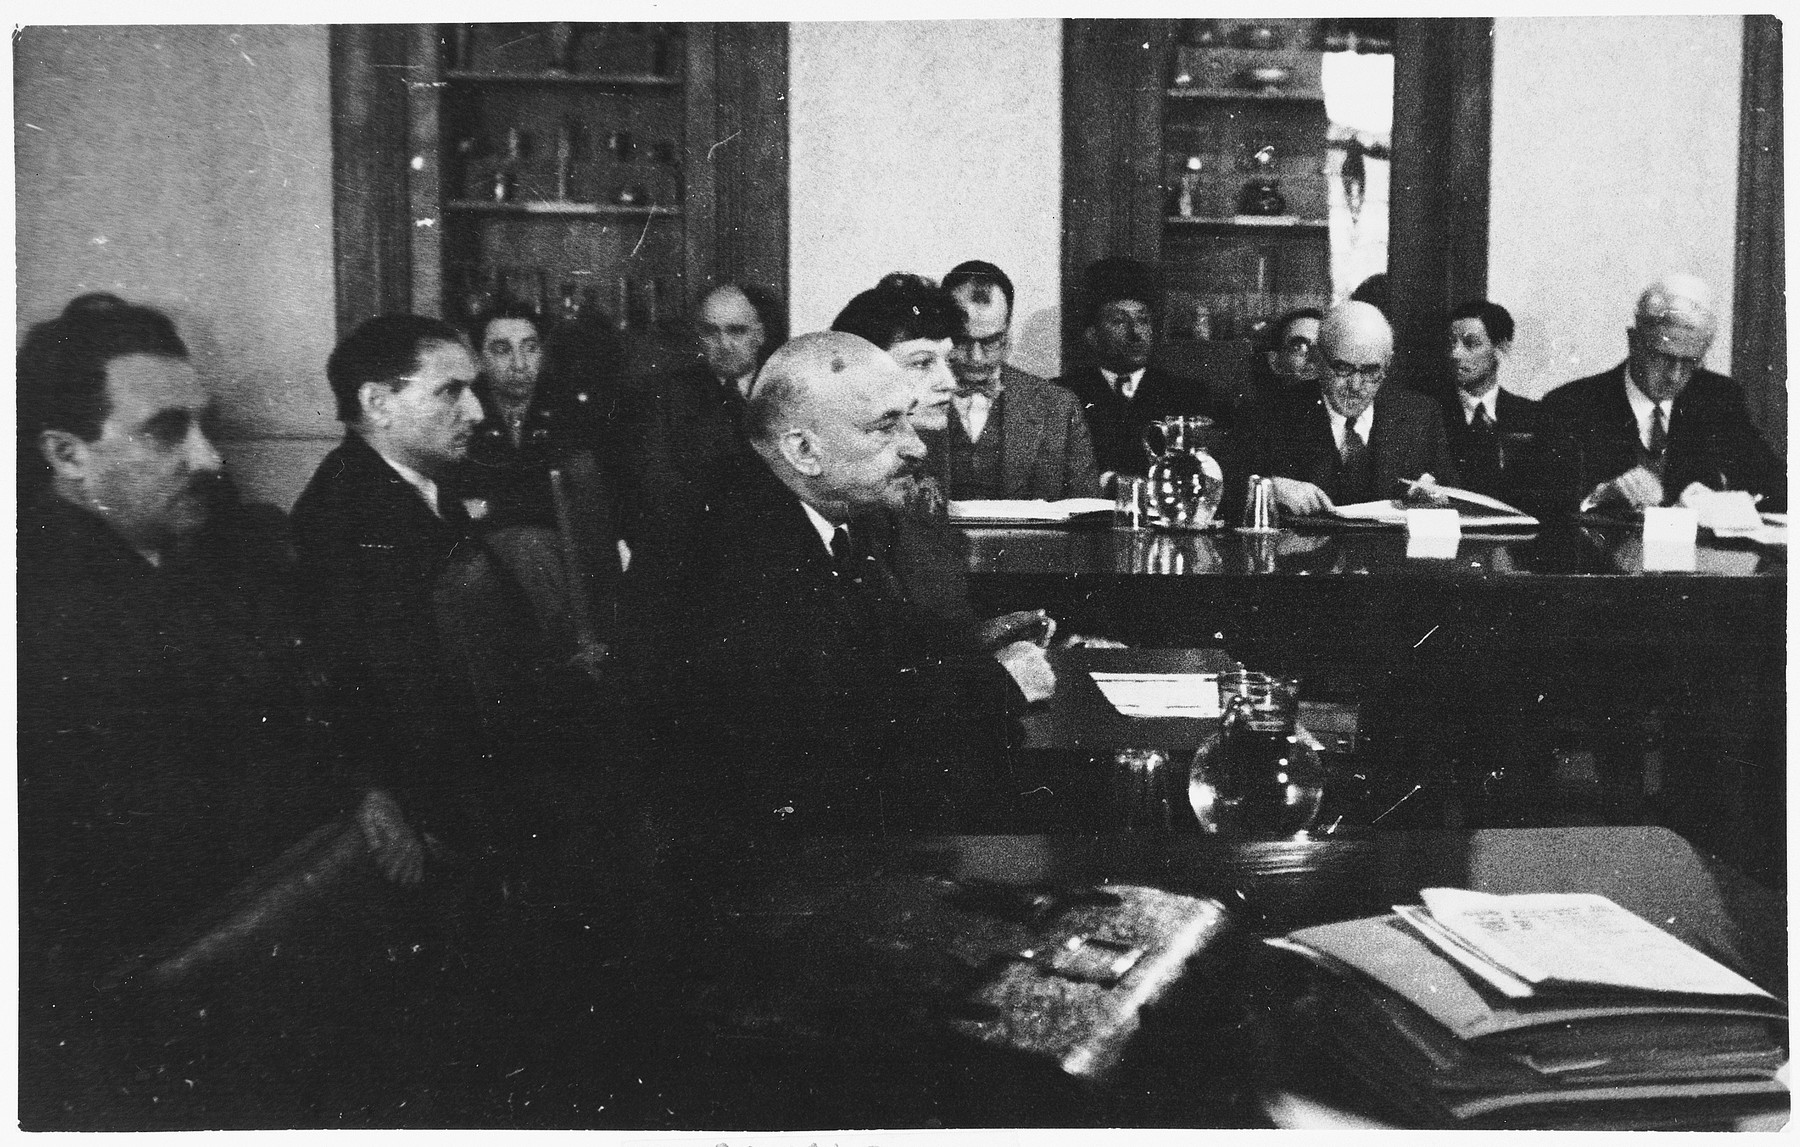 Chaim Weitzmann testifies at a hearing conducted by the Anglo-American Committee of Inquiry on Palestine at the YMCA building in Jerusalem.  Also pictured is James McDonald (far right).